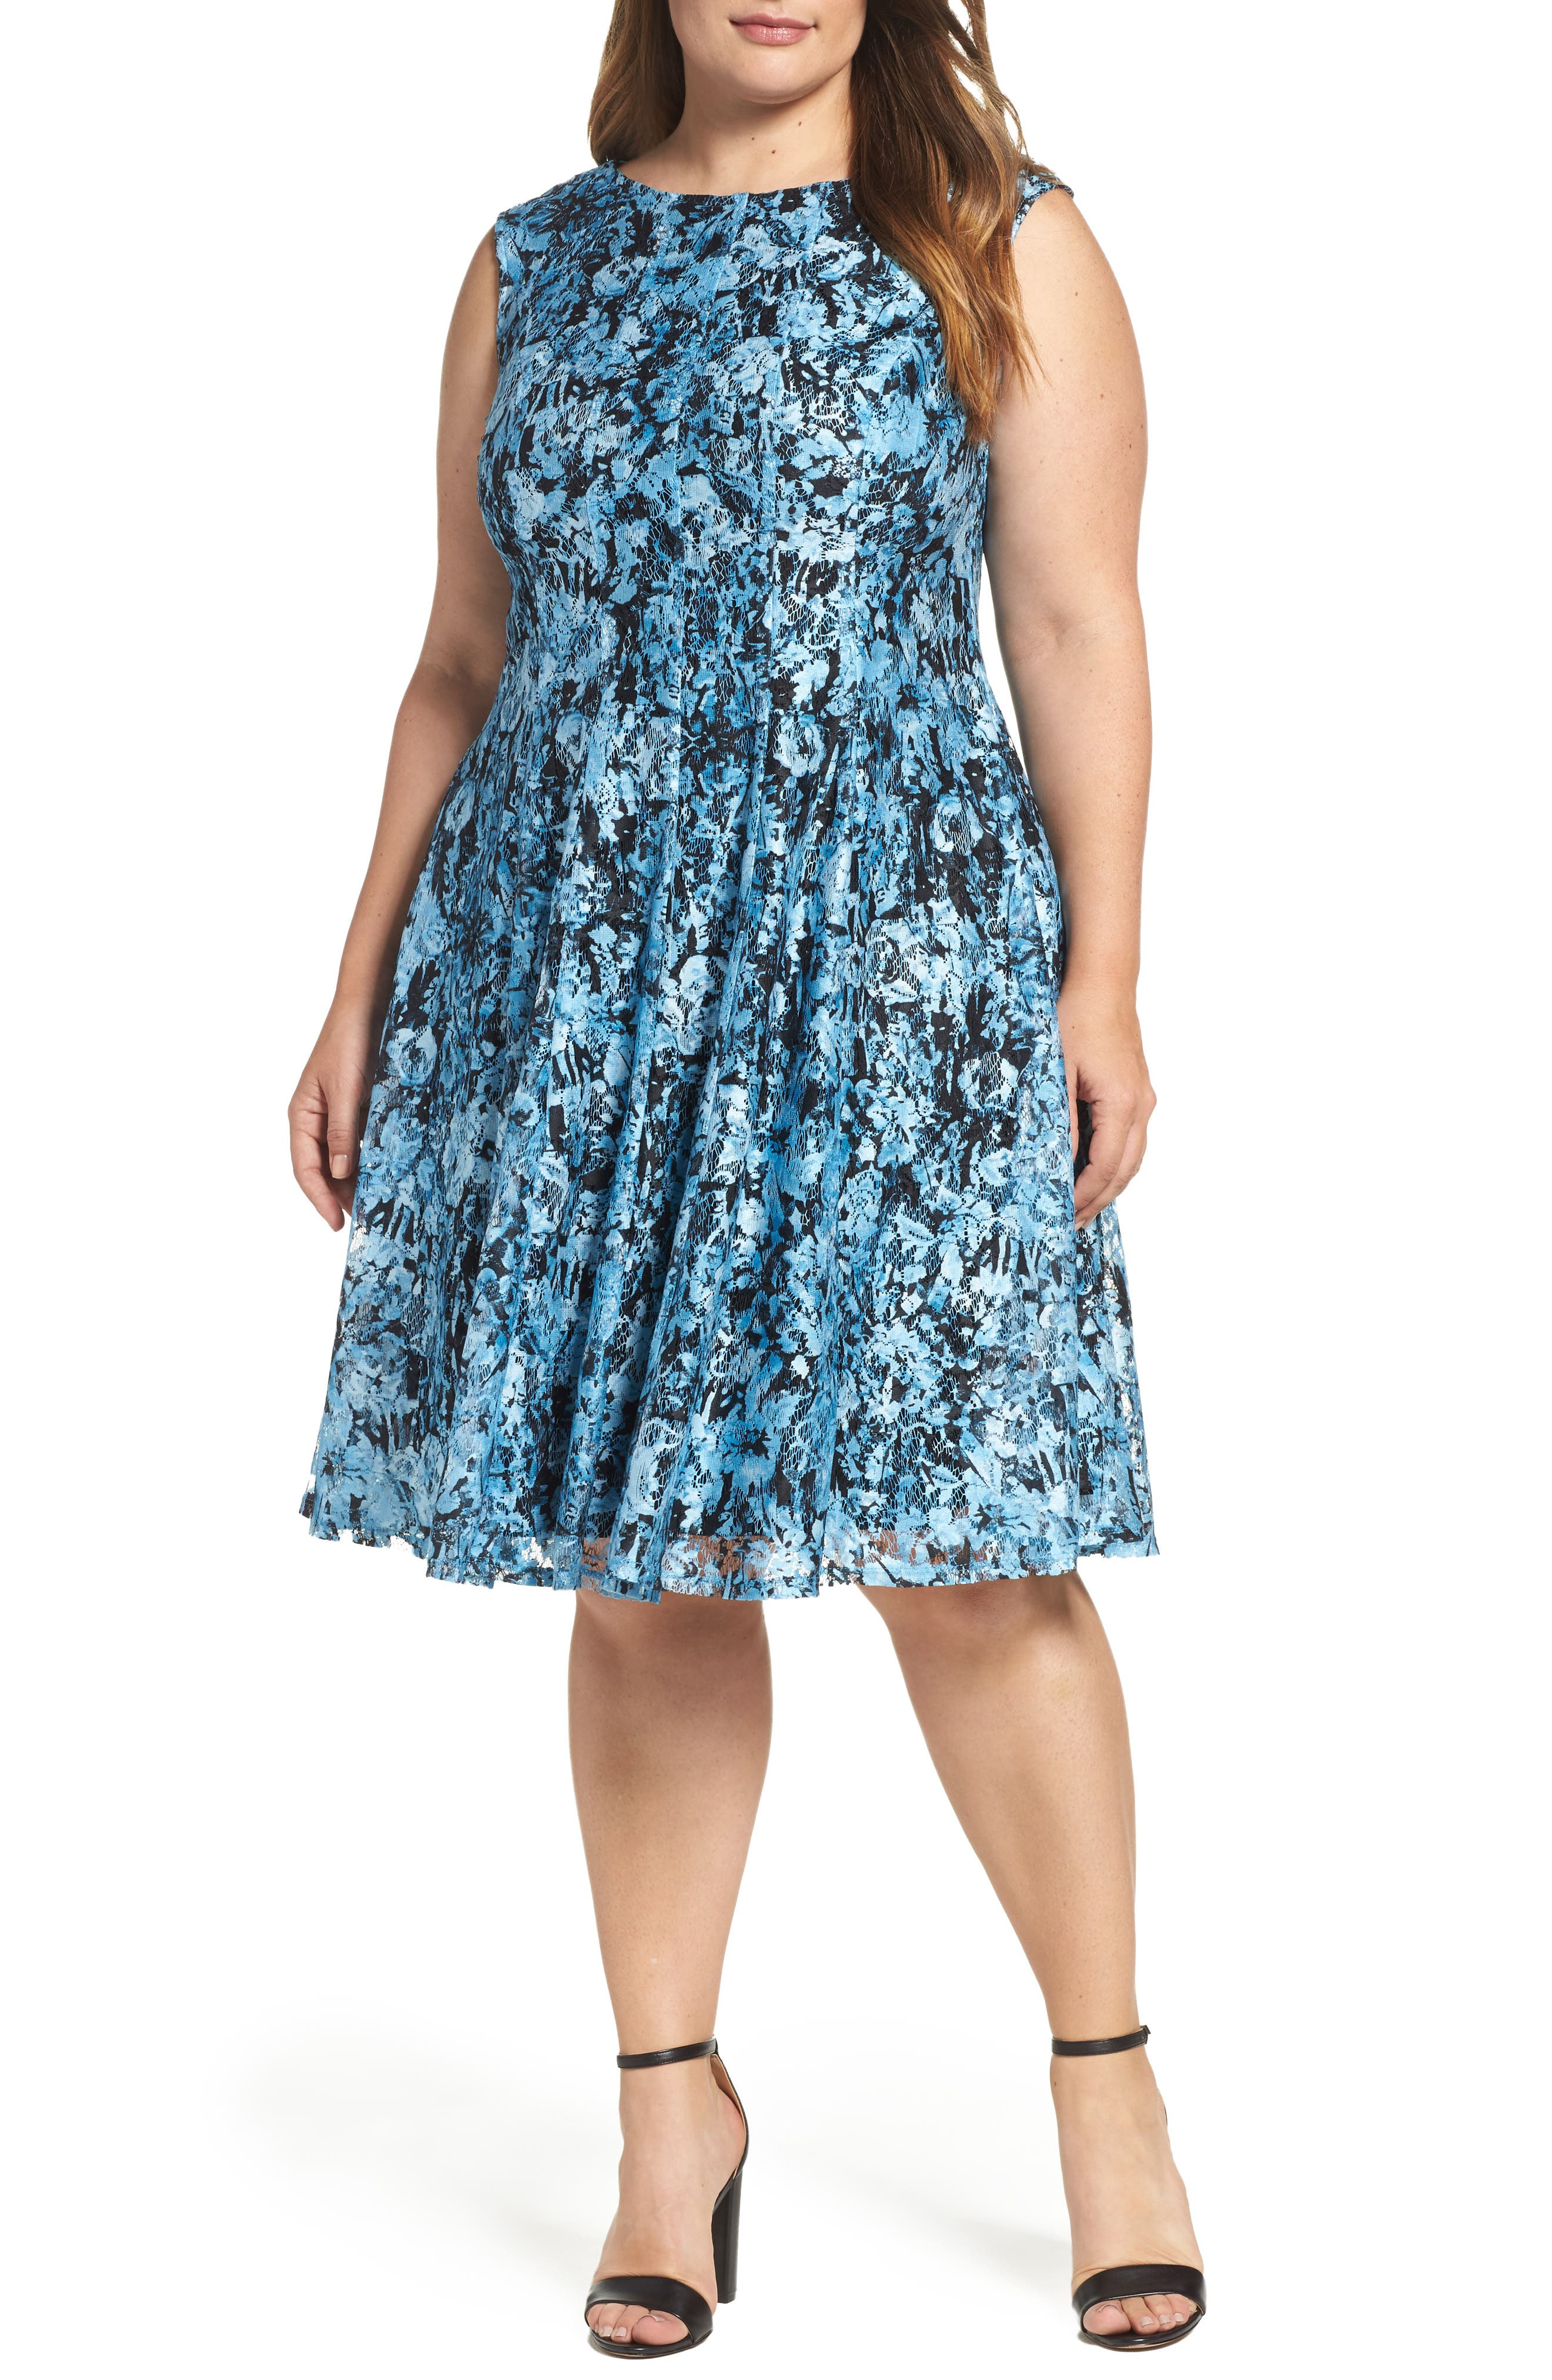 Alternate Image 1 Selected - Gabby Skye Print Lace Fit & Flare Dress (Plus Size)